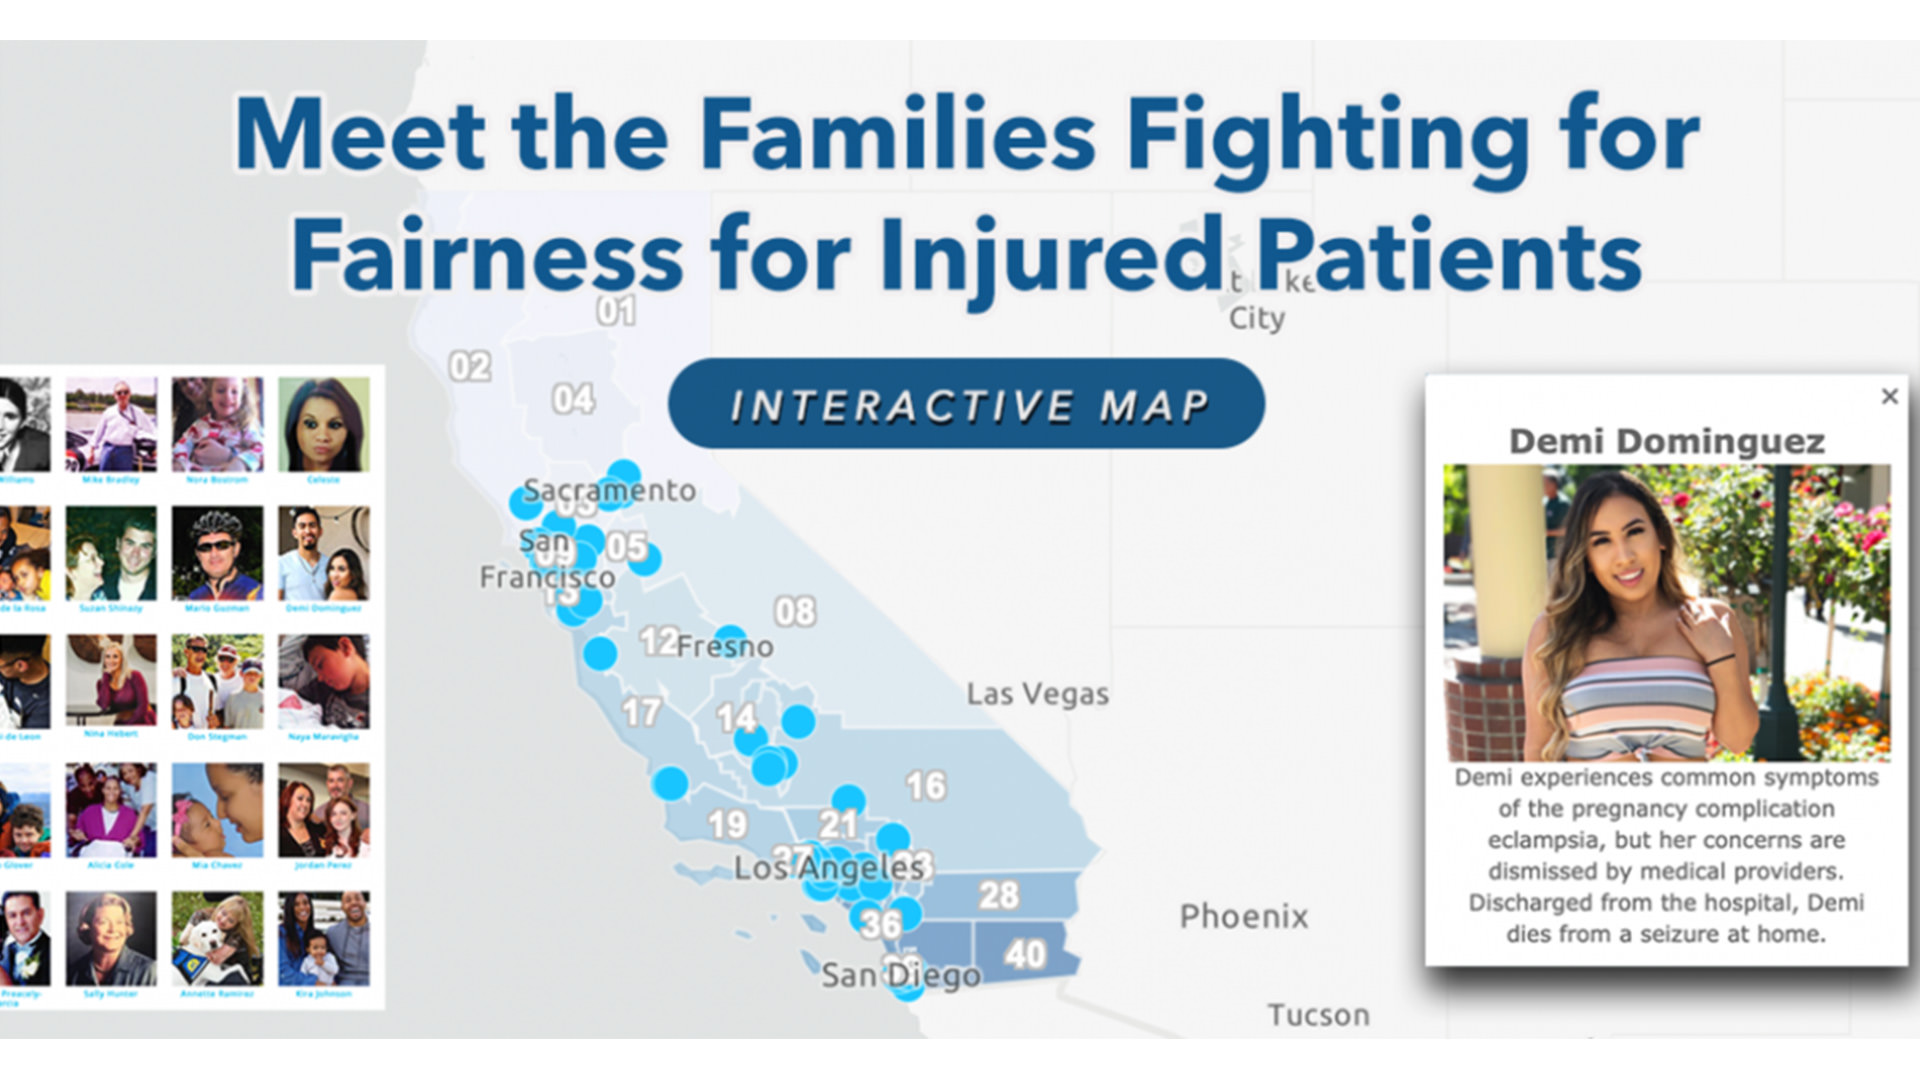 Meet the families fighting for fairness for injured patients